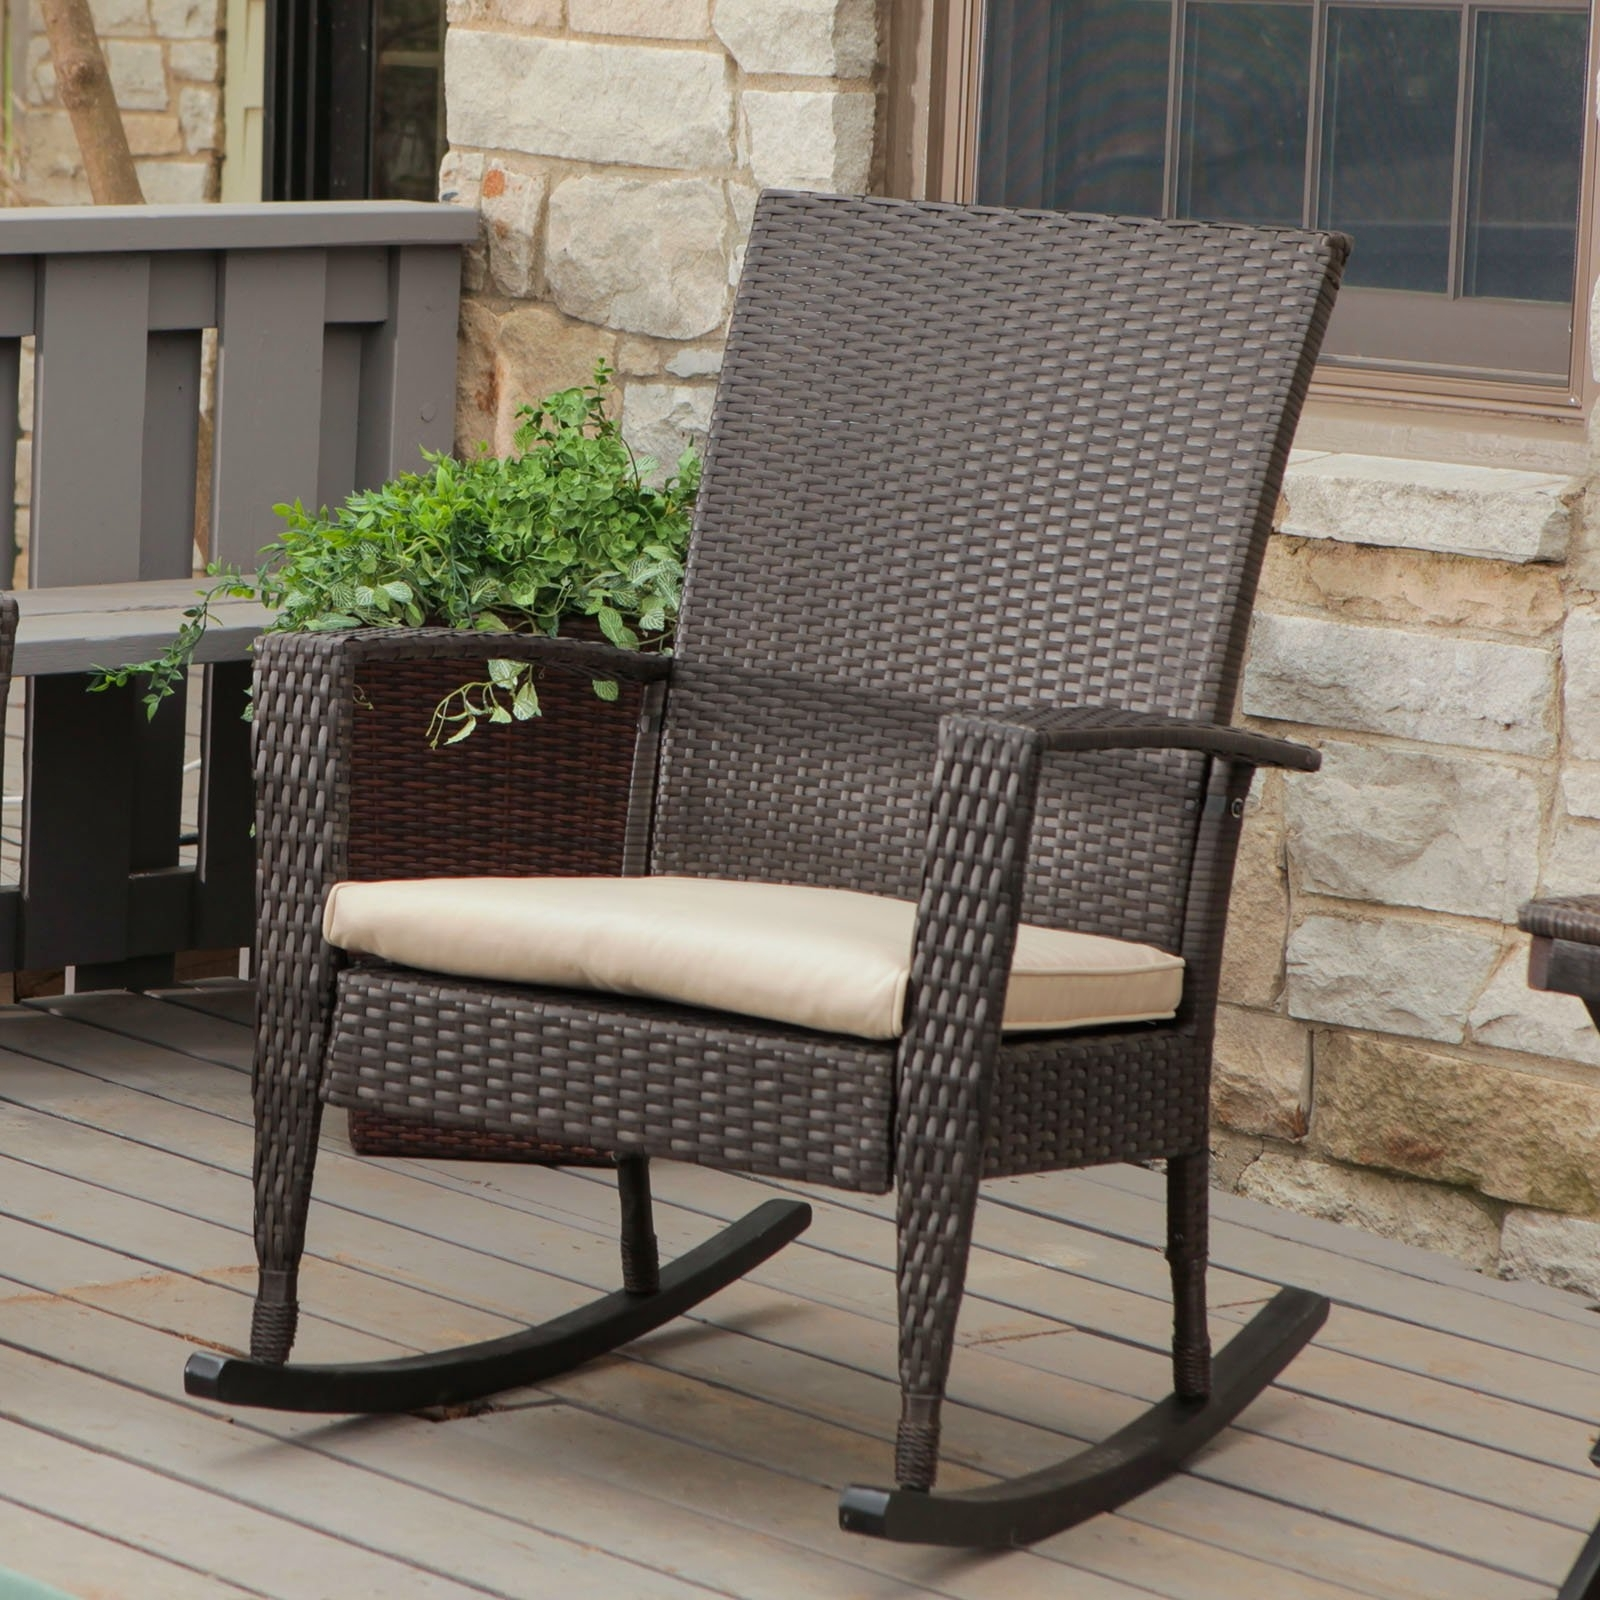 Small Patio Rocking Chairs With Regard To Popular Simple Vintage Wicker Rocking Chair On Small Home Remodel Ideas With (View 2 of 15)